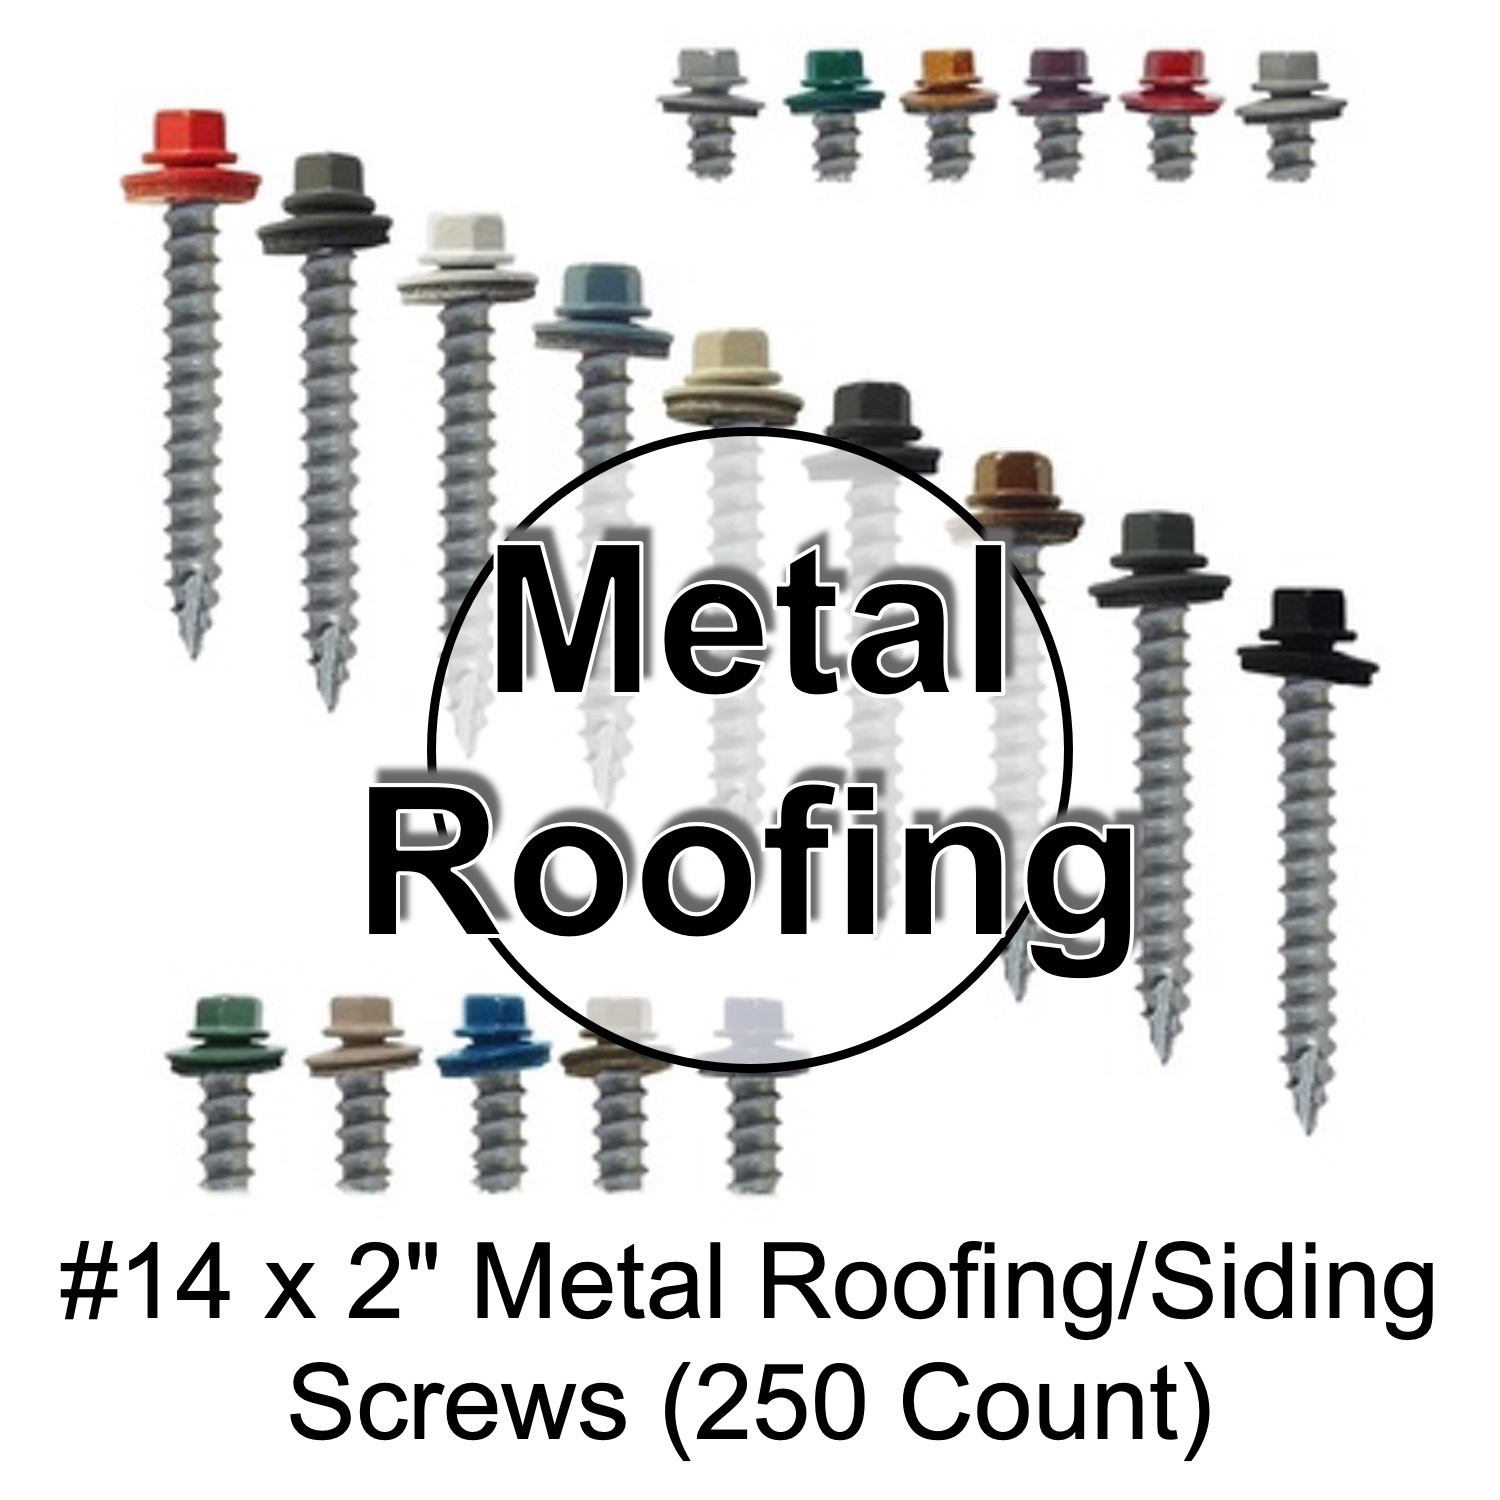 Colored Sheet Metal Roofing Screws Corrugated Metal Roofing Siding Screws 14 X 2 2 Inch Roofing Screws